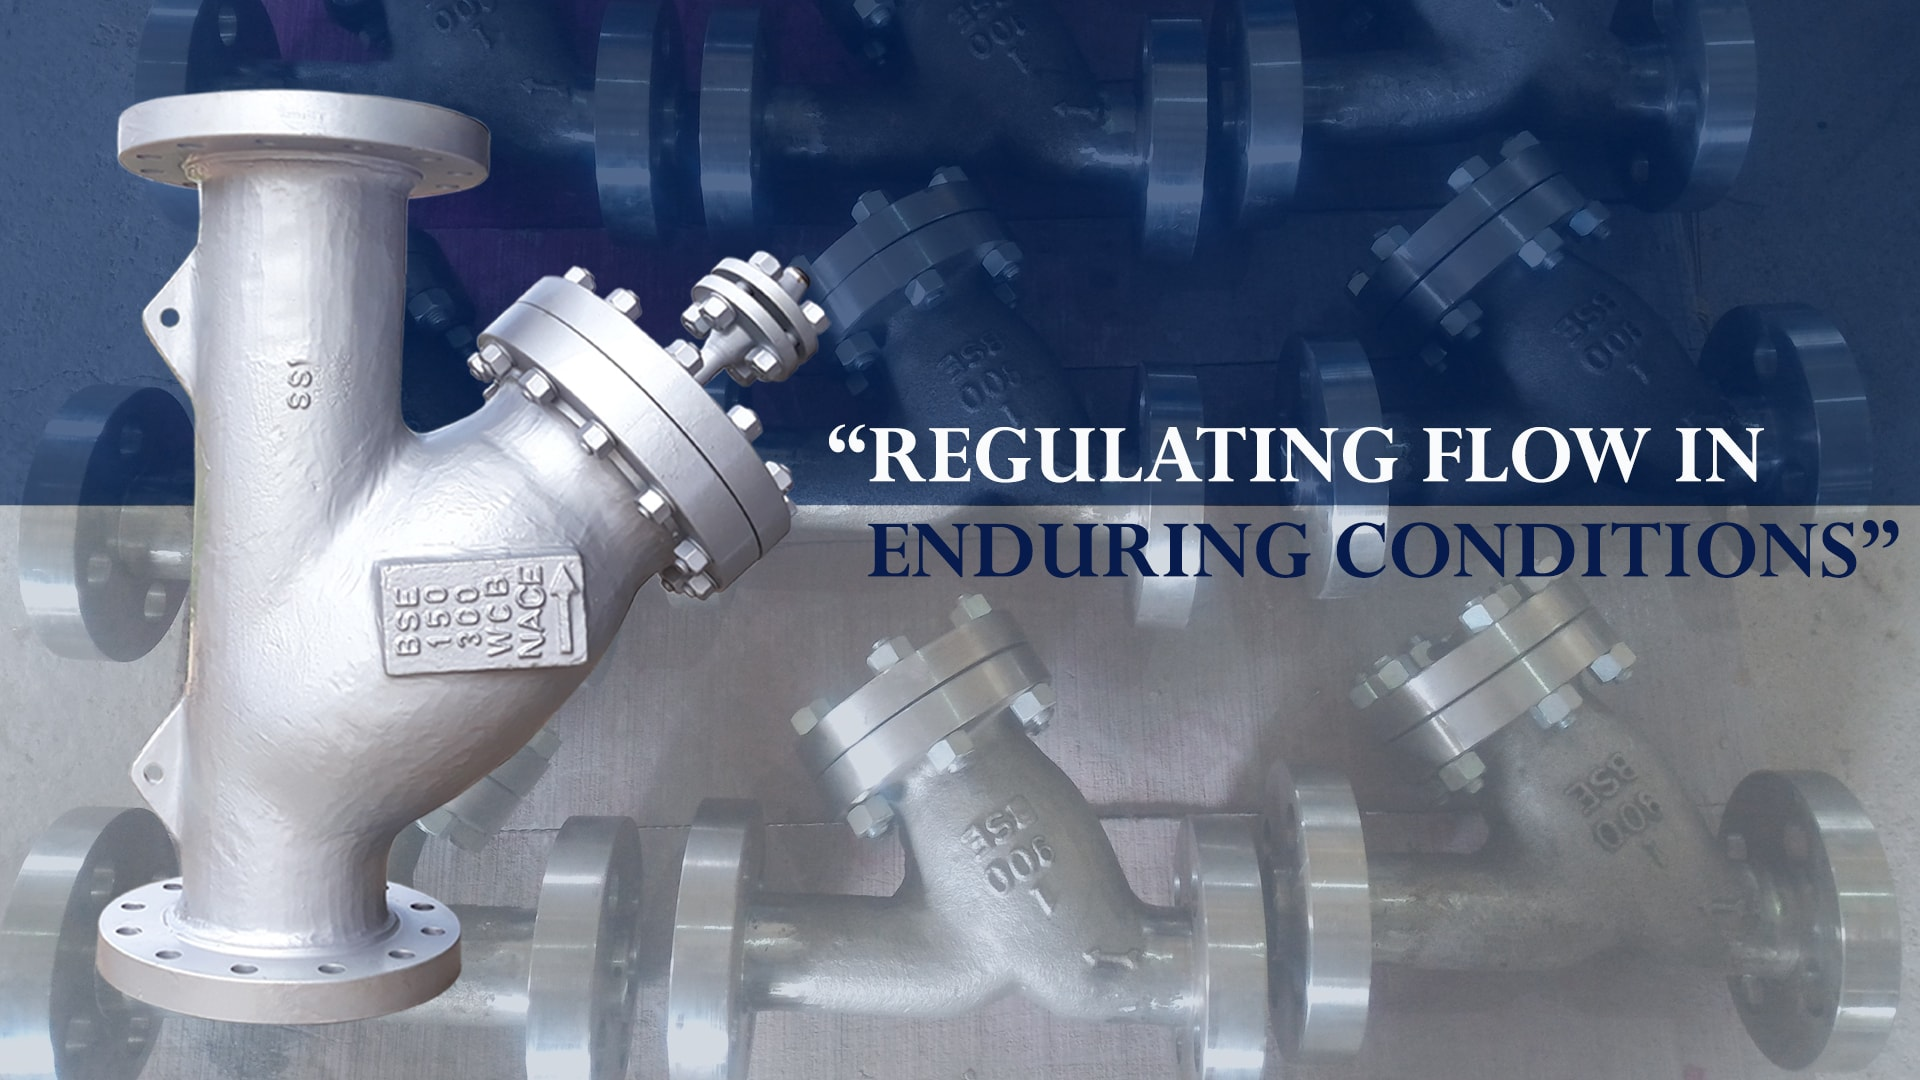 Regulation flow in enduring conditions